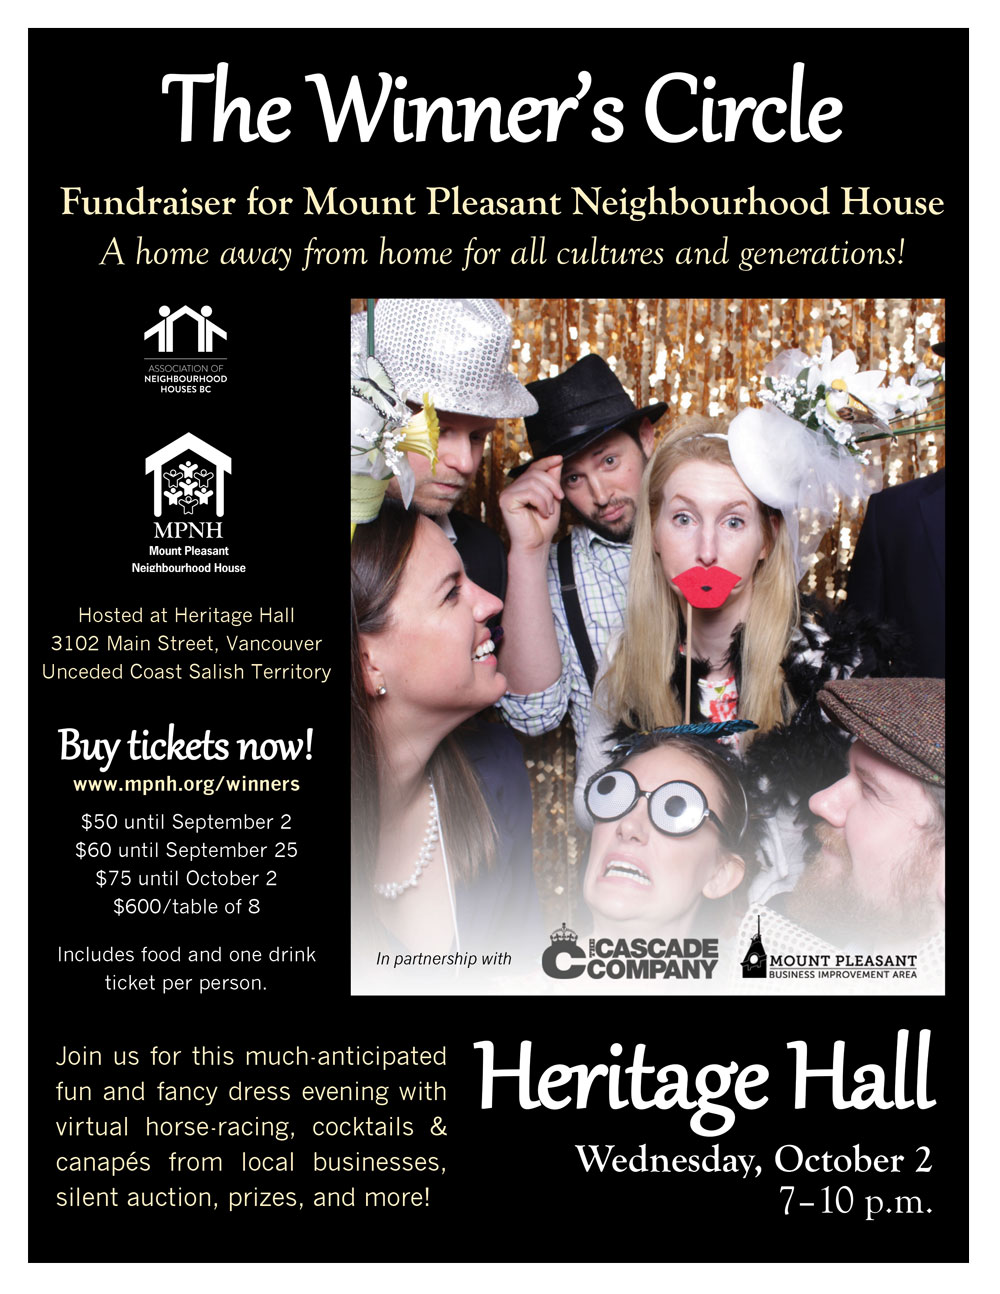 An image of the poster with event details, featuring people in fancy dress and making funny faces with photo booth props, in front of a gold glittery background.